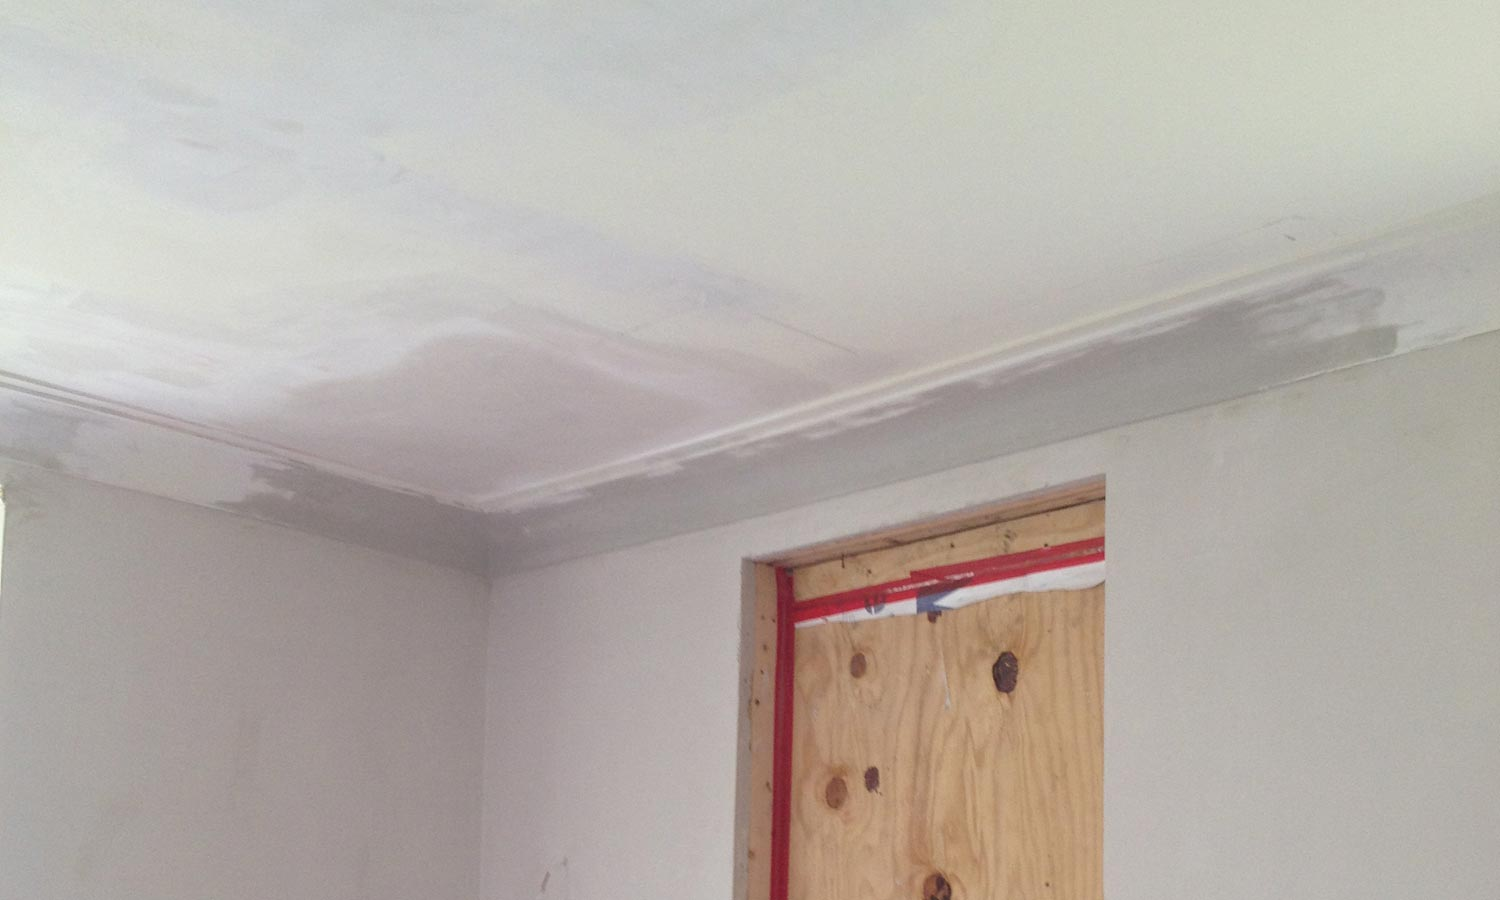 plaster-patching-1